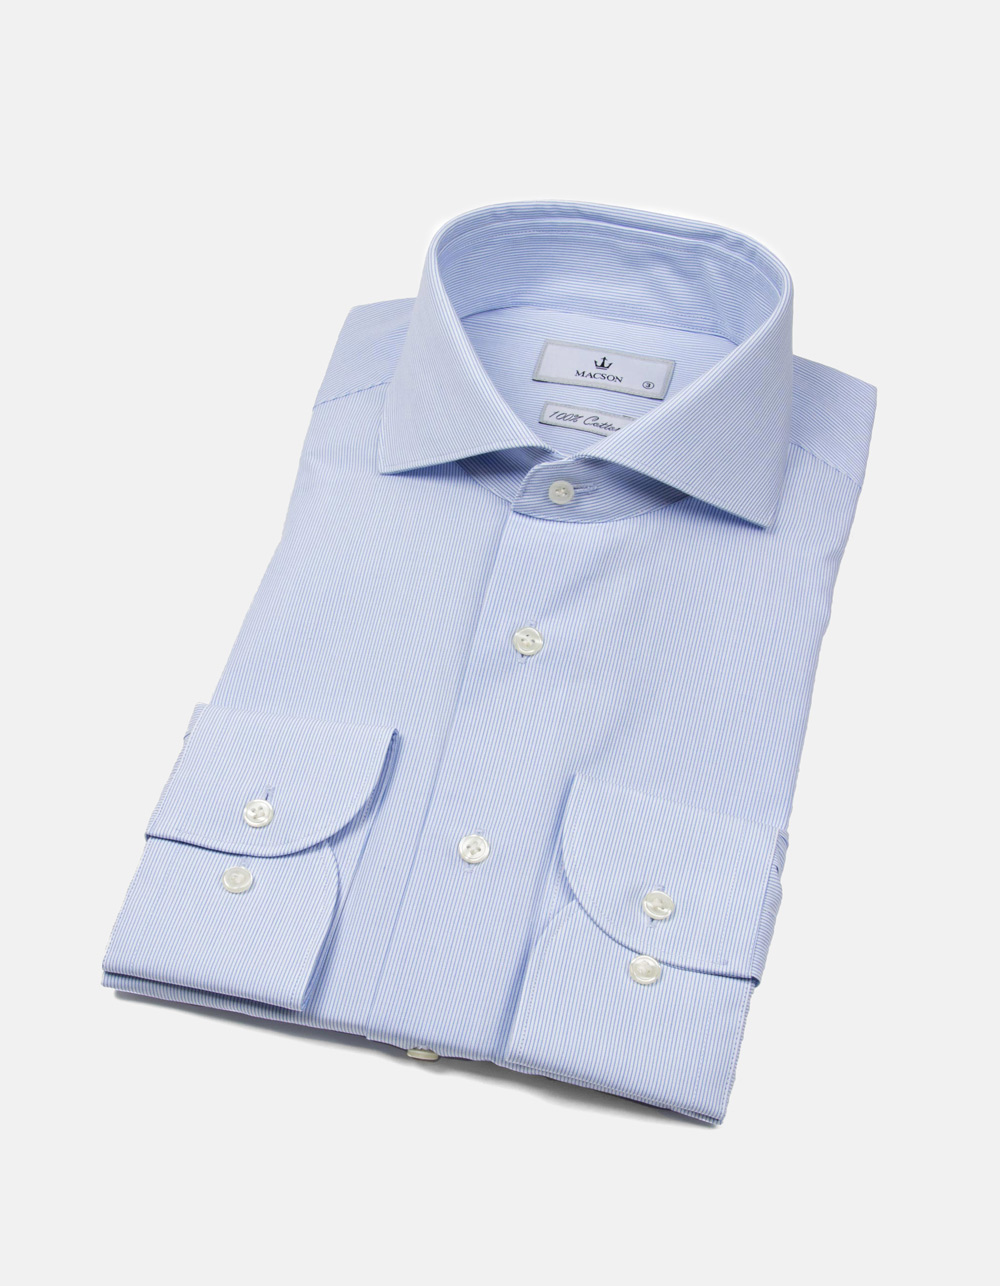 Pinstripe shirt with white collar